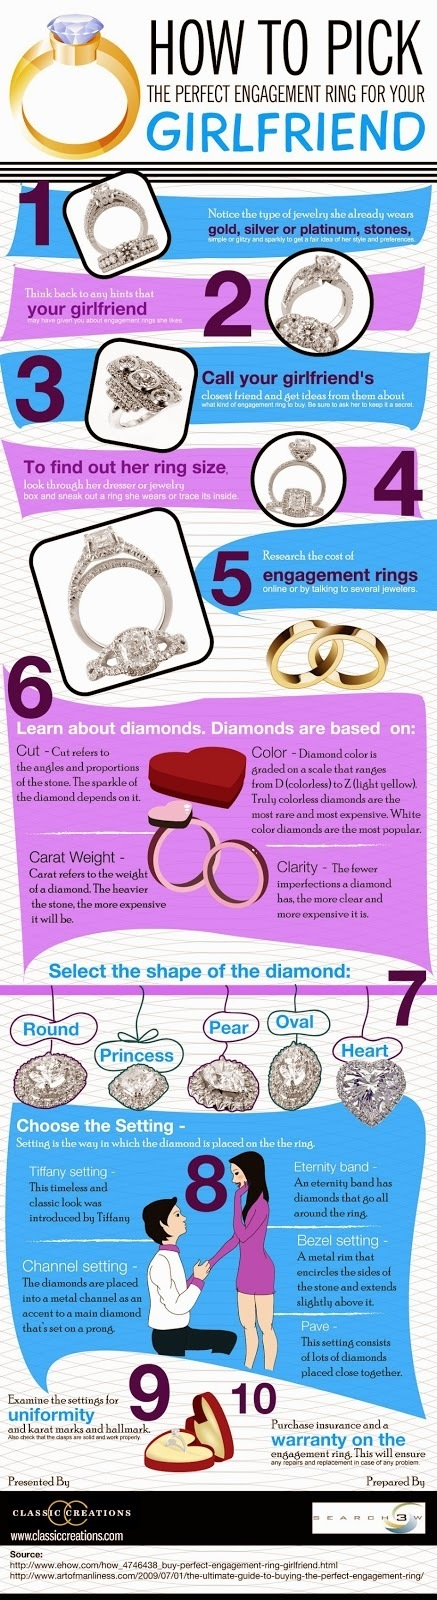 How To Pick The Perfect Engagement Ring For Your Girlfrien | Shopping Jewelry | Scoop.it